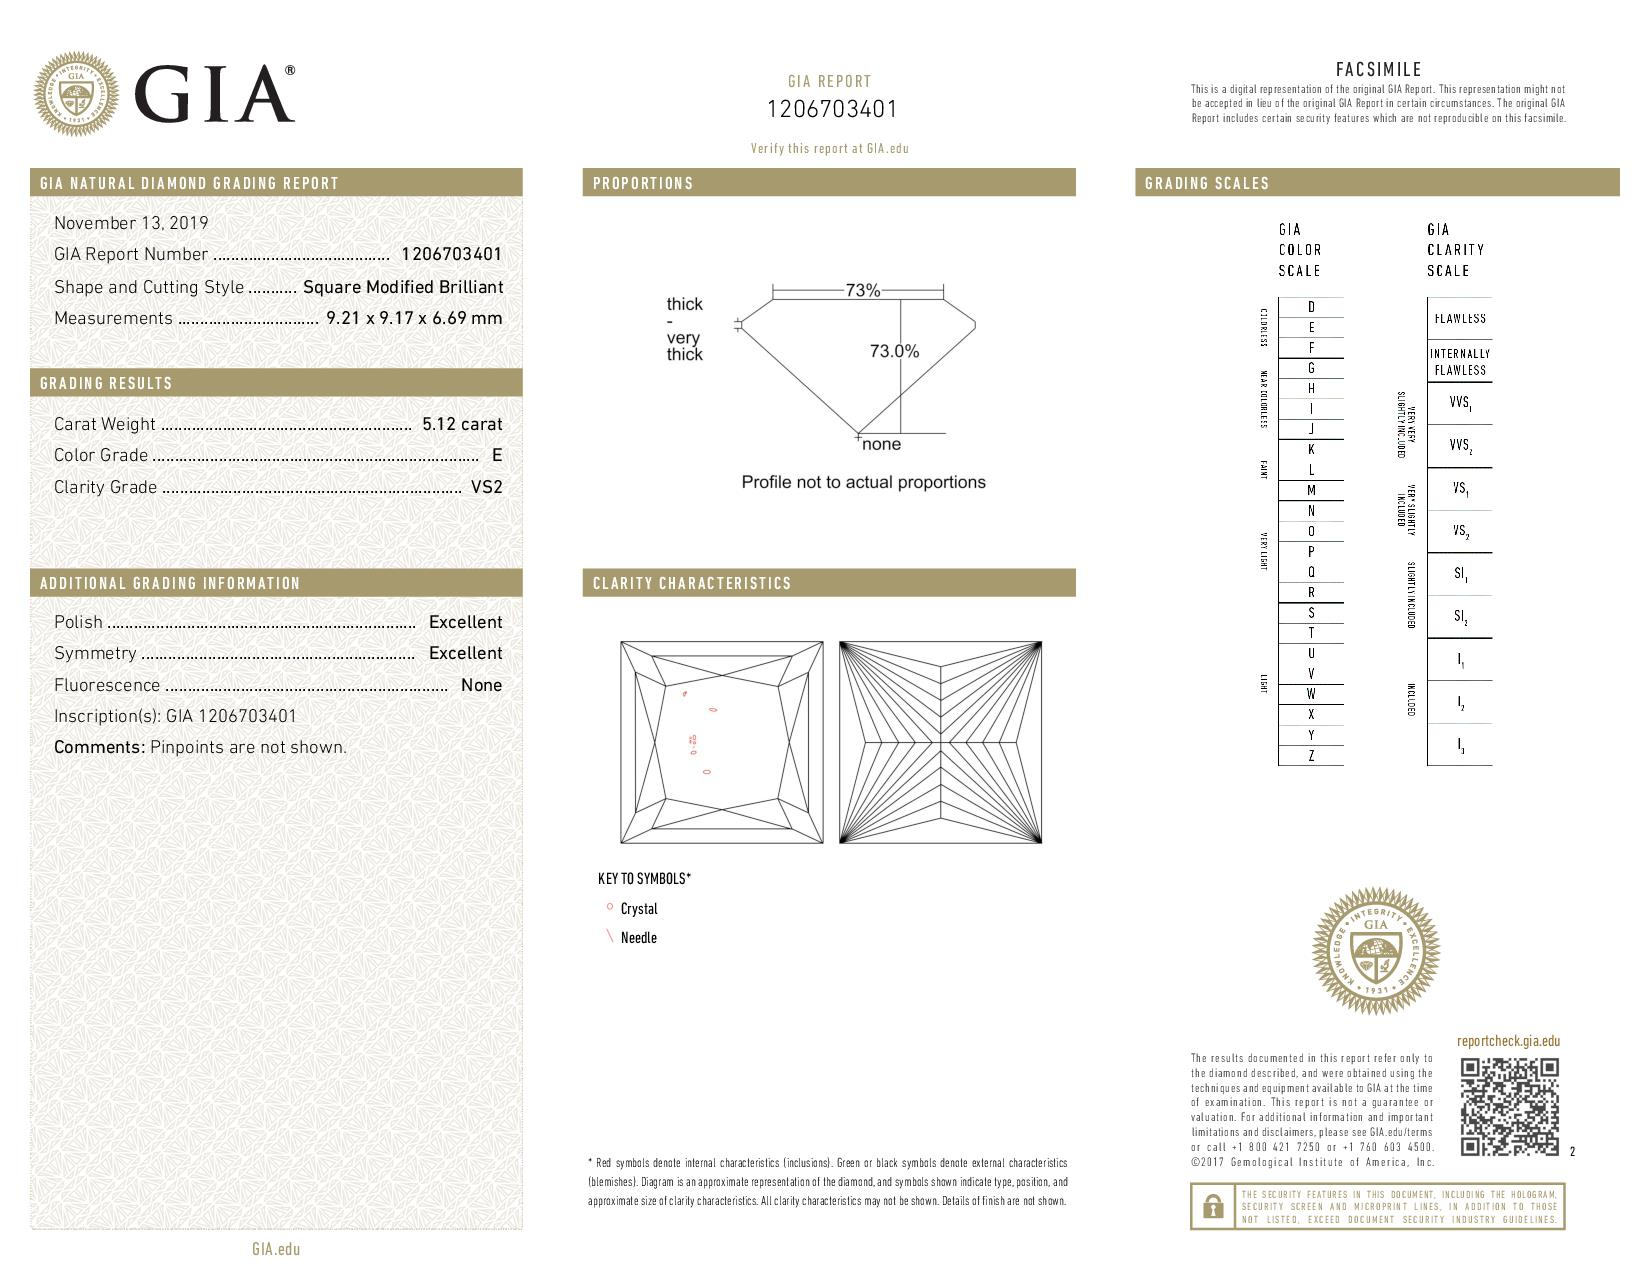 This is a 5.12 carat princess shape, E color, VS2 clarity natural diamond accompanied by a GIA grading report.